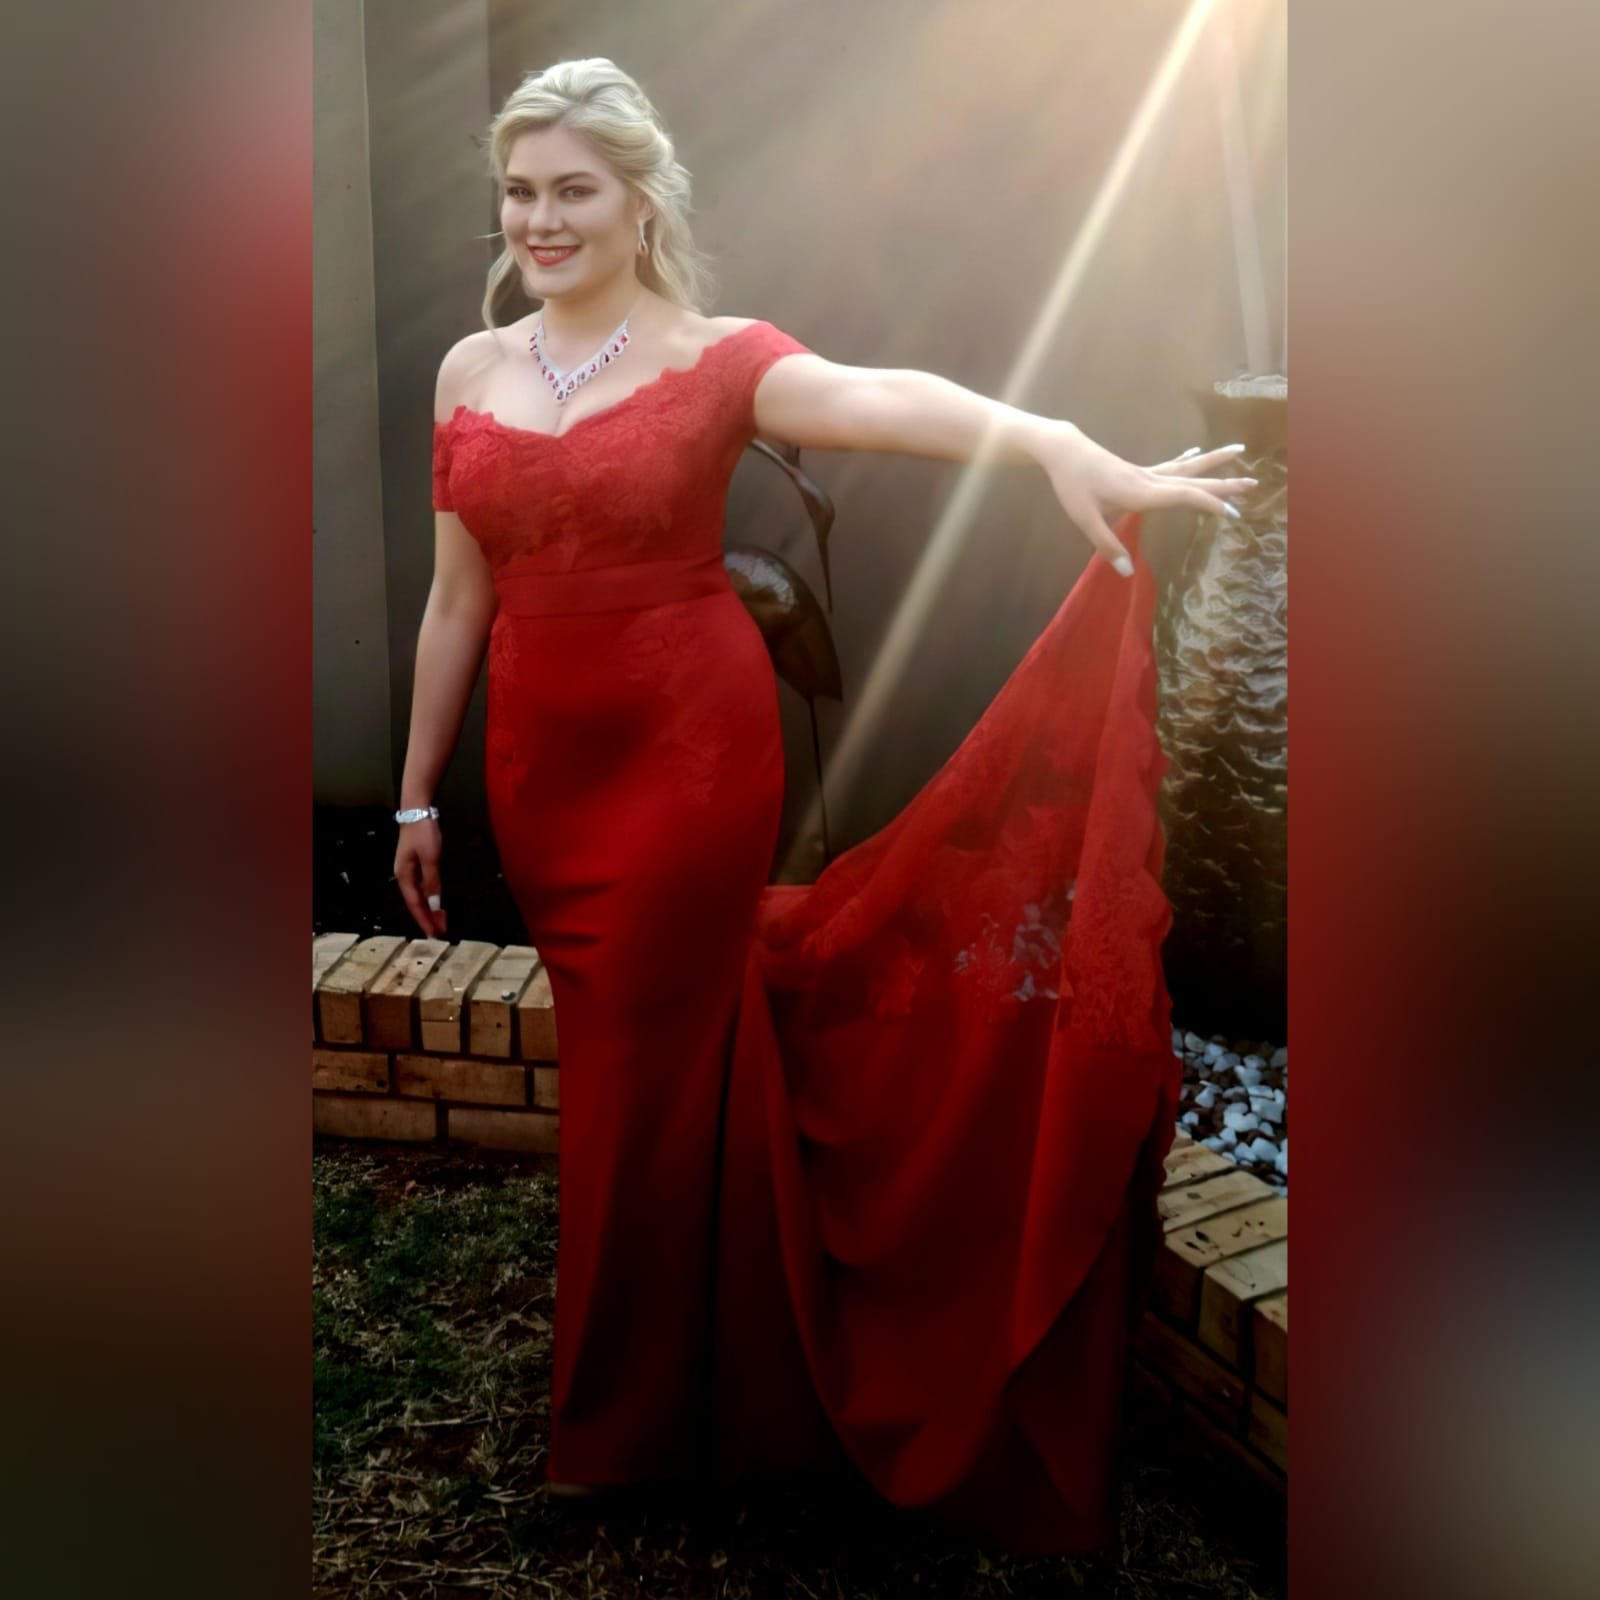 Gorgeous red soft mermaid dress 3 <blockquote><em>you don't have to play masculine to be a strong woman. – mary elizabeth winstead</em></blockquote> a gorgeous red soft mermaid dress created for my client's special event. A dress that turns heads, due to its amazing colour, elegance and sophistication. An off shoulder neckline with off shoulder cap sleeves in lace, with button detail running down the back. A satin belt accentuates the waistline. A wide sheer lace train to add a sensual and dramatic look to the dress.